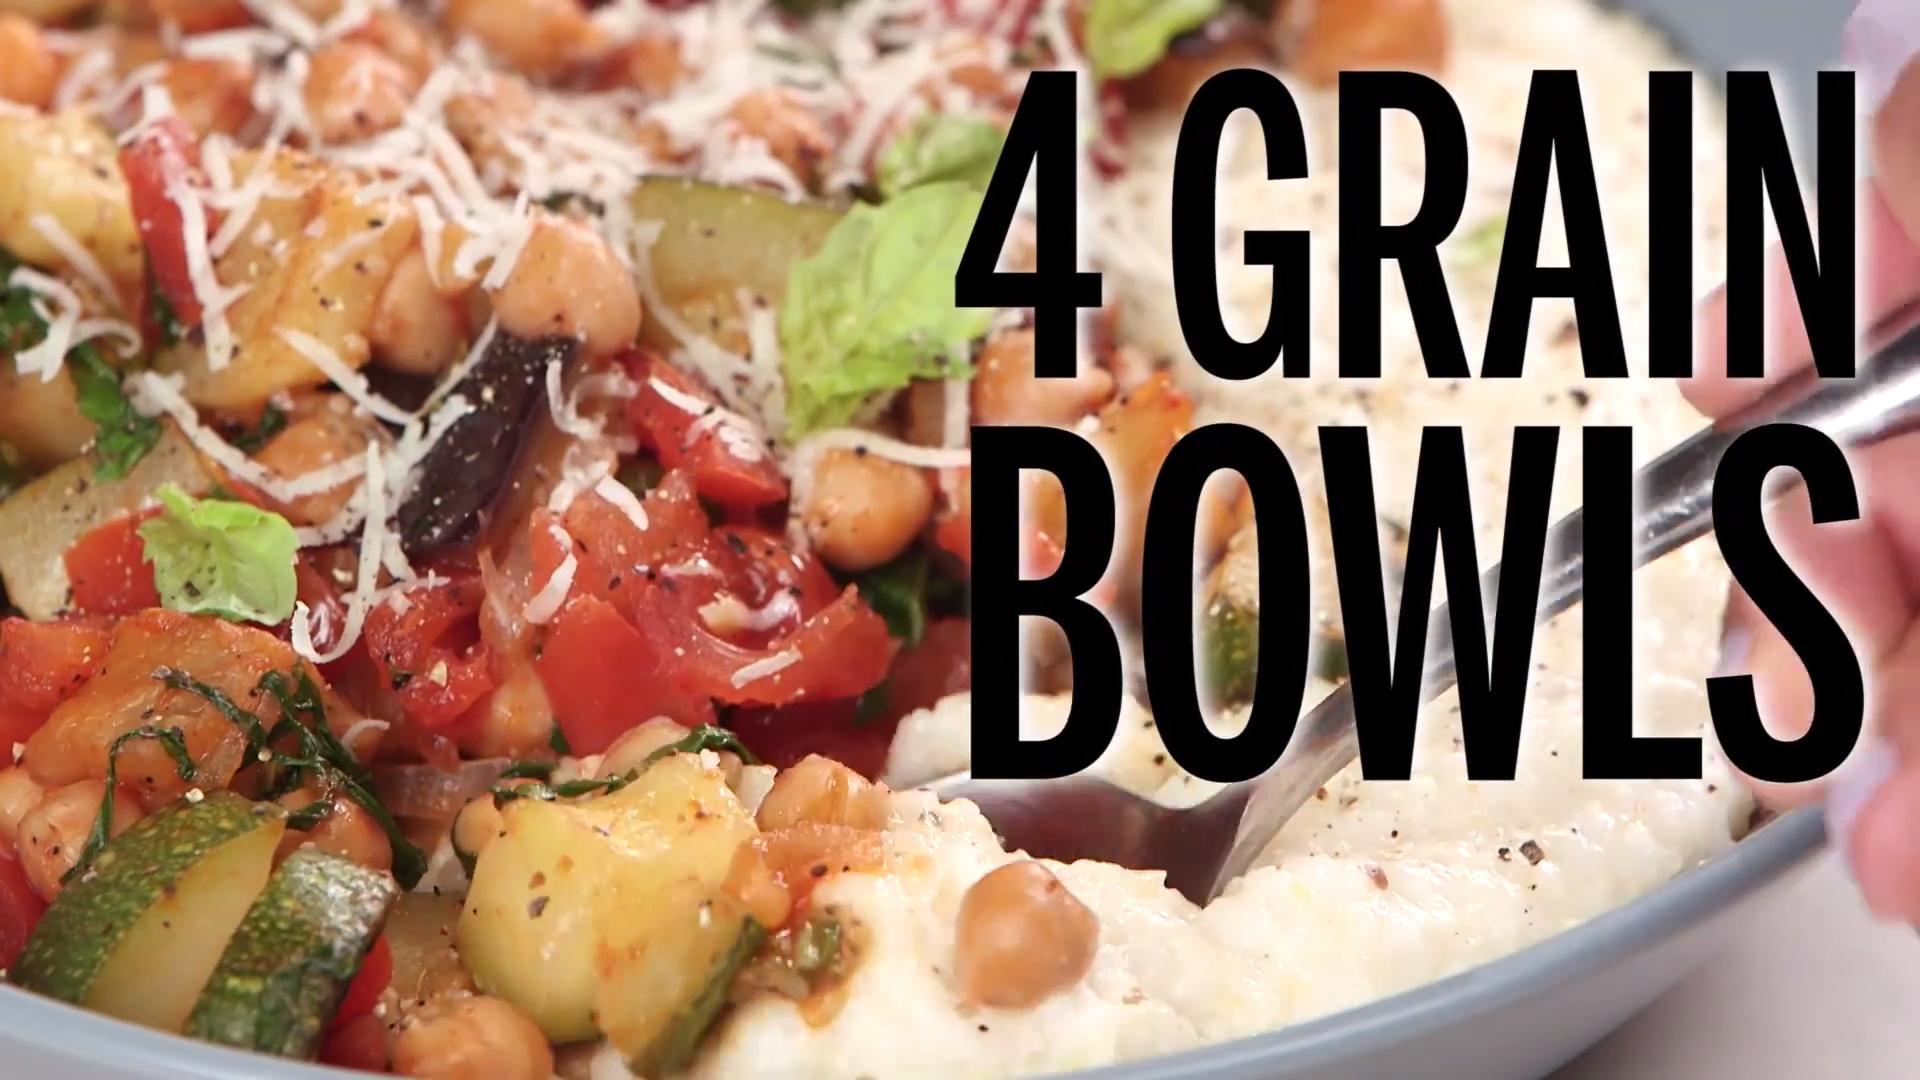 Grain bowl recipes